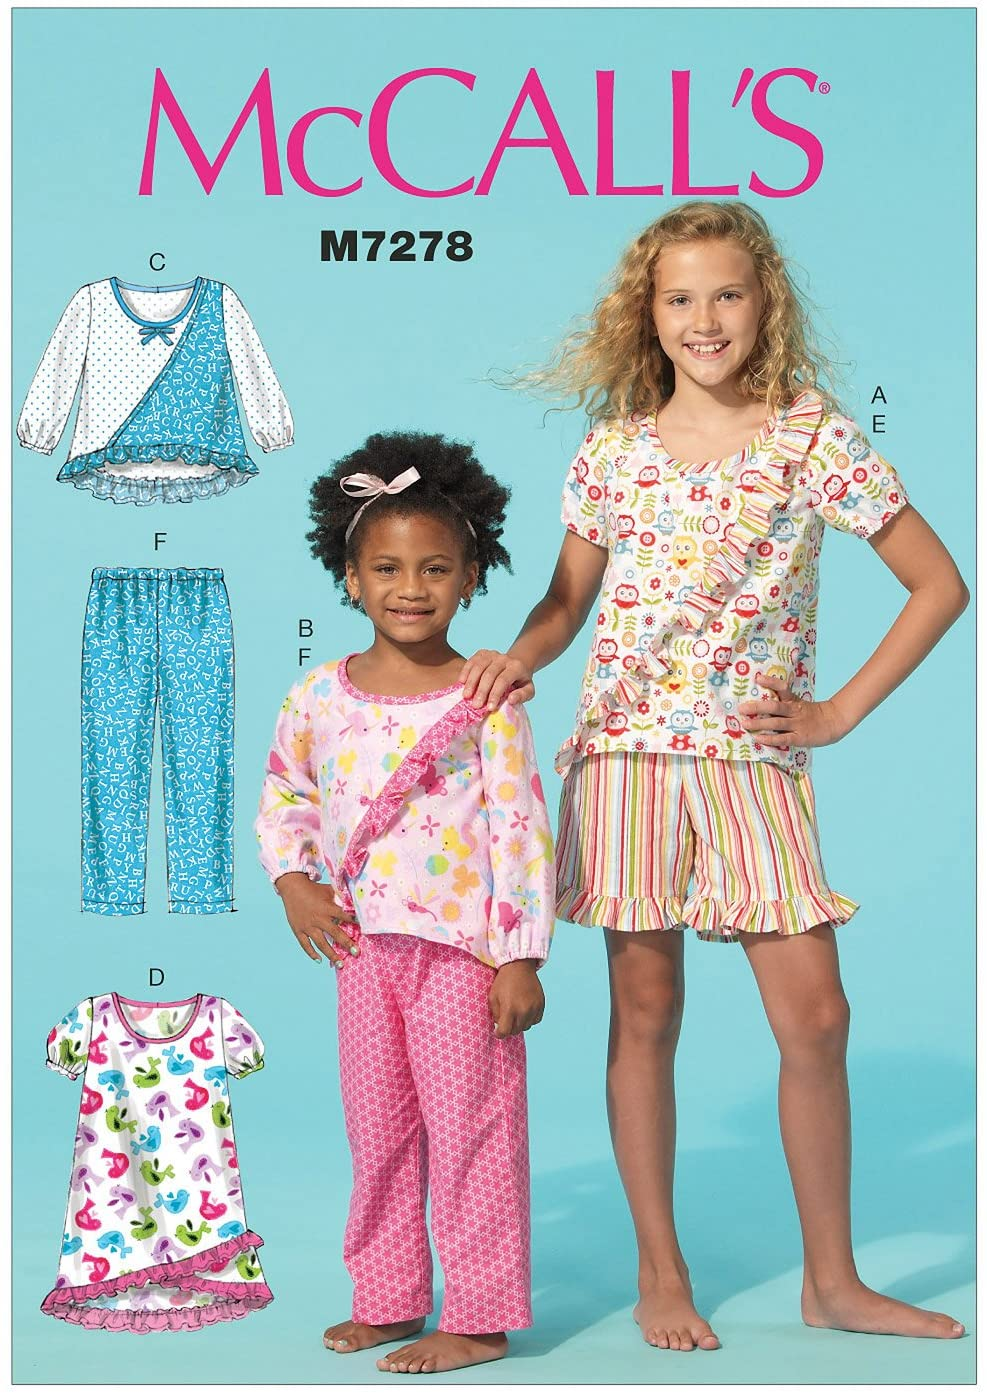 McCall's Patterns M7278 Children's/Girls' Tops, Dress, Shorts and Pants, Size CHJ (7-8-10-12-14)